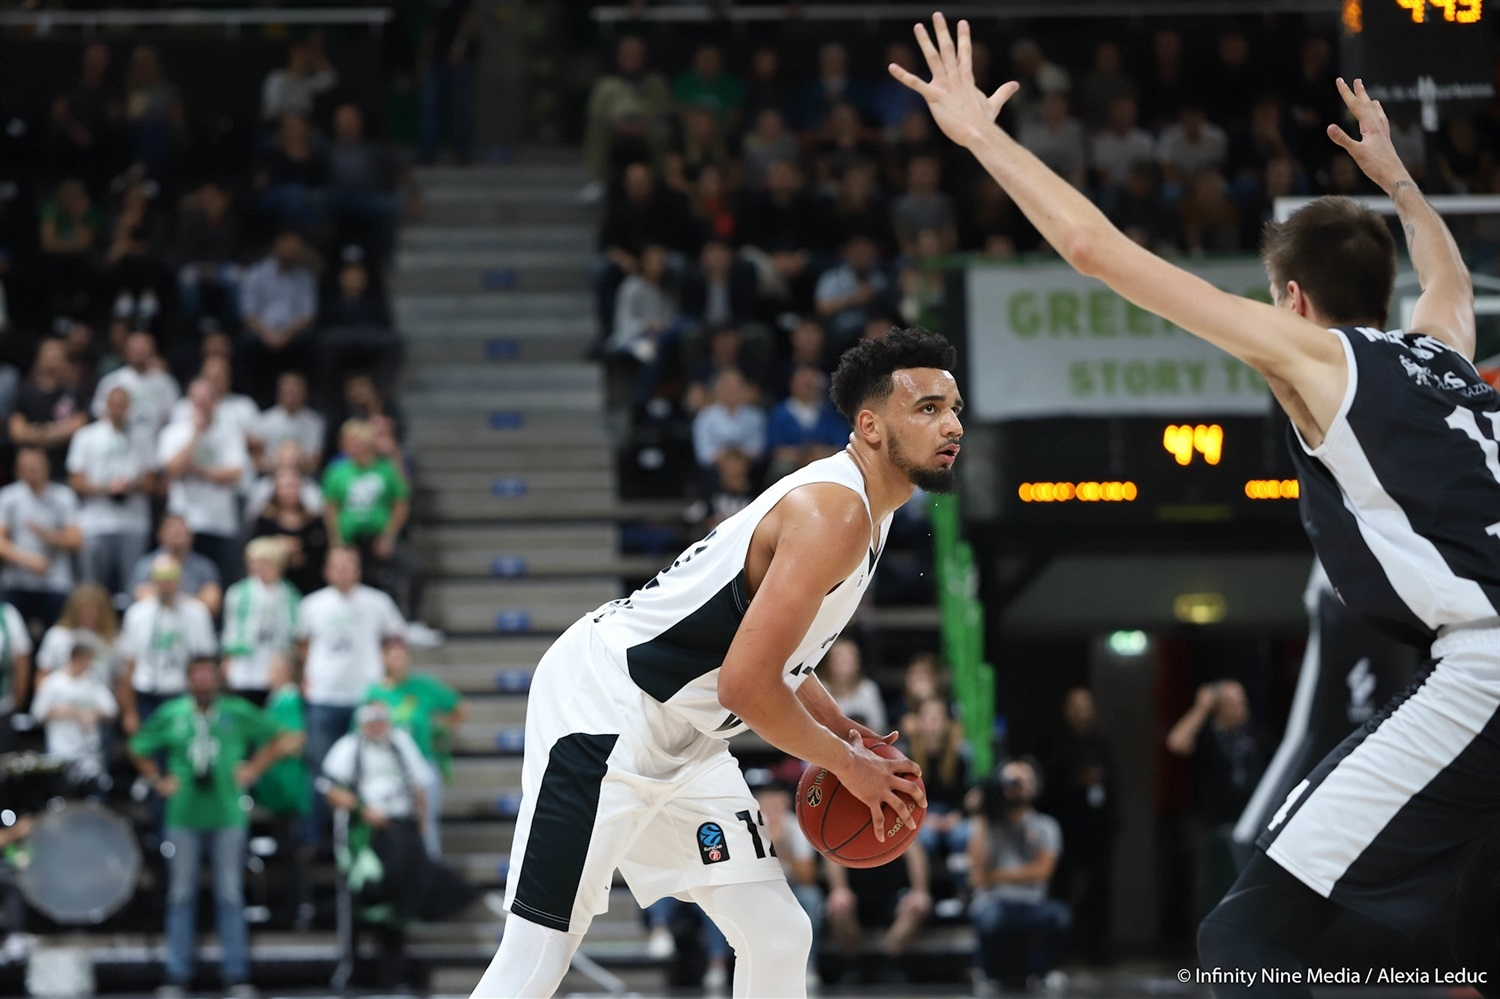 Amine Noua - LDLC ASVEL Villeurbanne (photo Infinity Nine Media - Alexia Leduc) - EC18